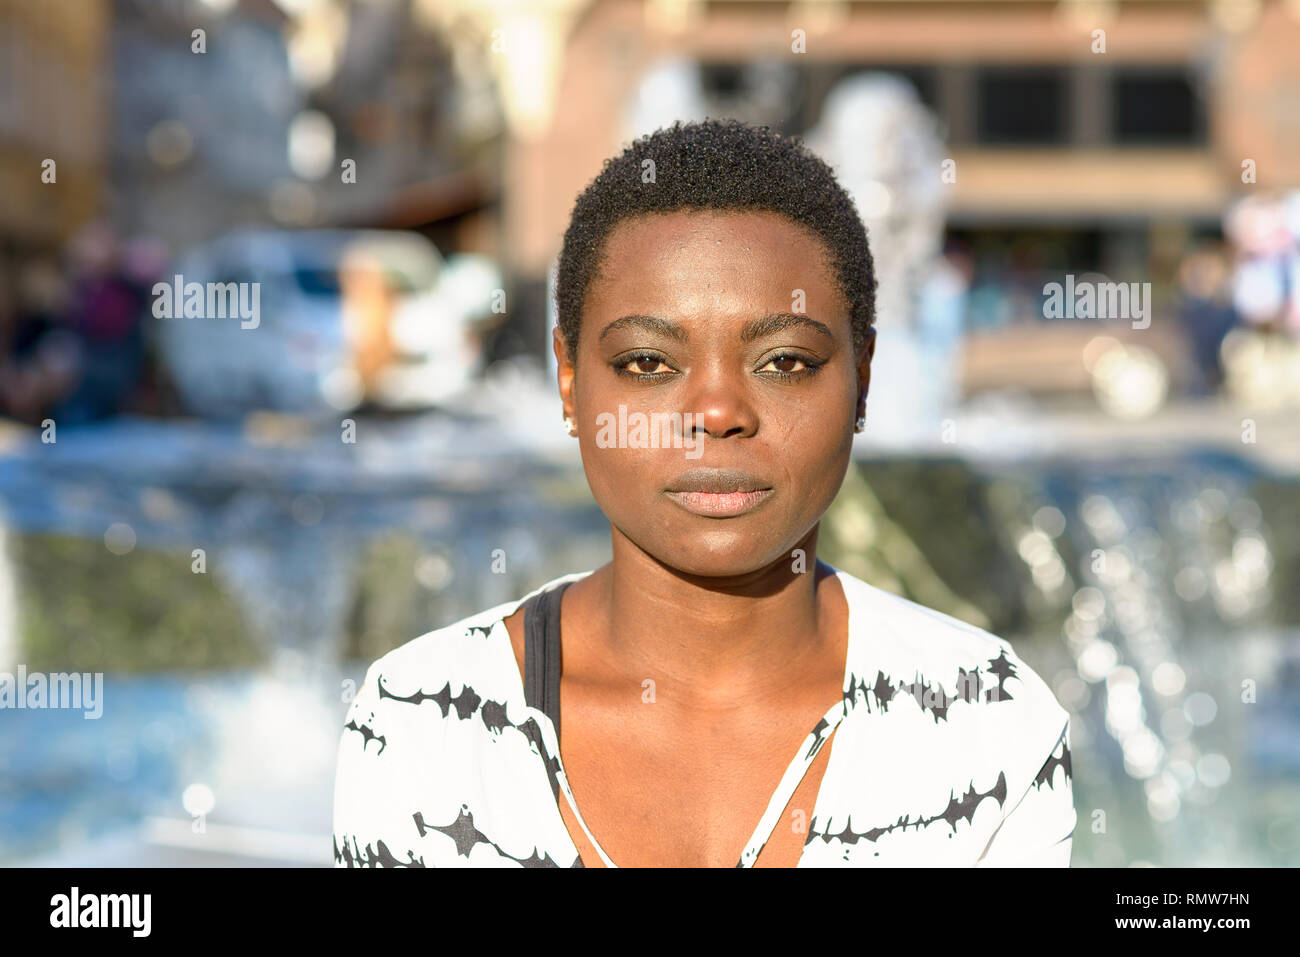 Stylish young African woman with a calm deadpan expression staring quietly at the camera standing in front of a city fountain - Stock Image